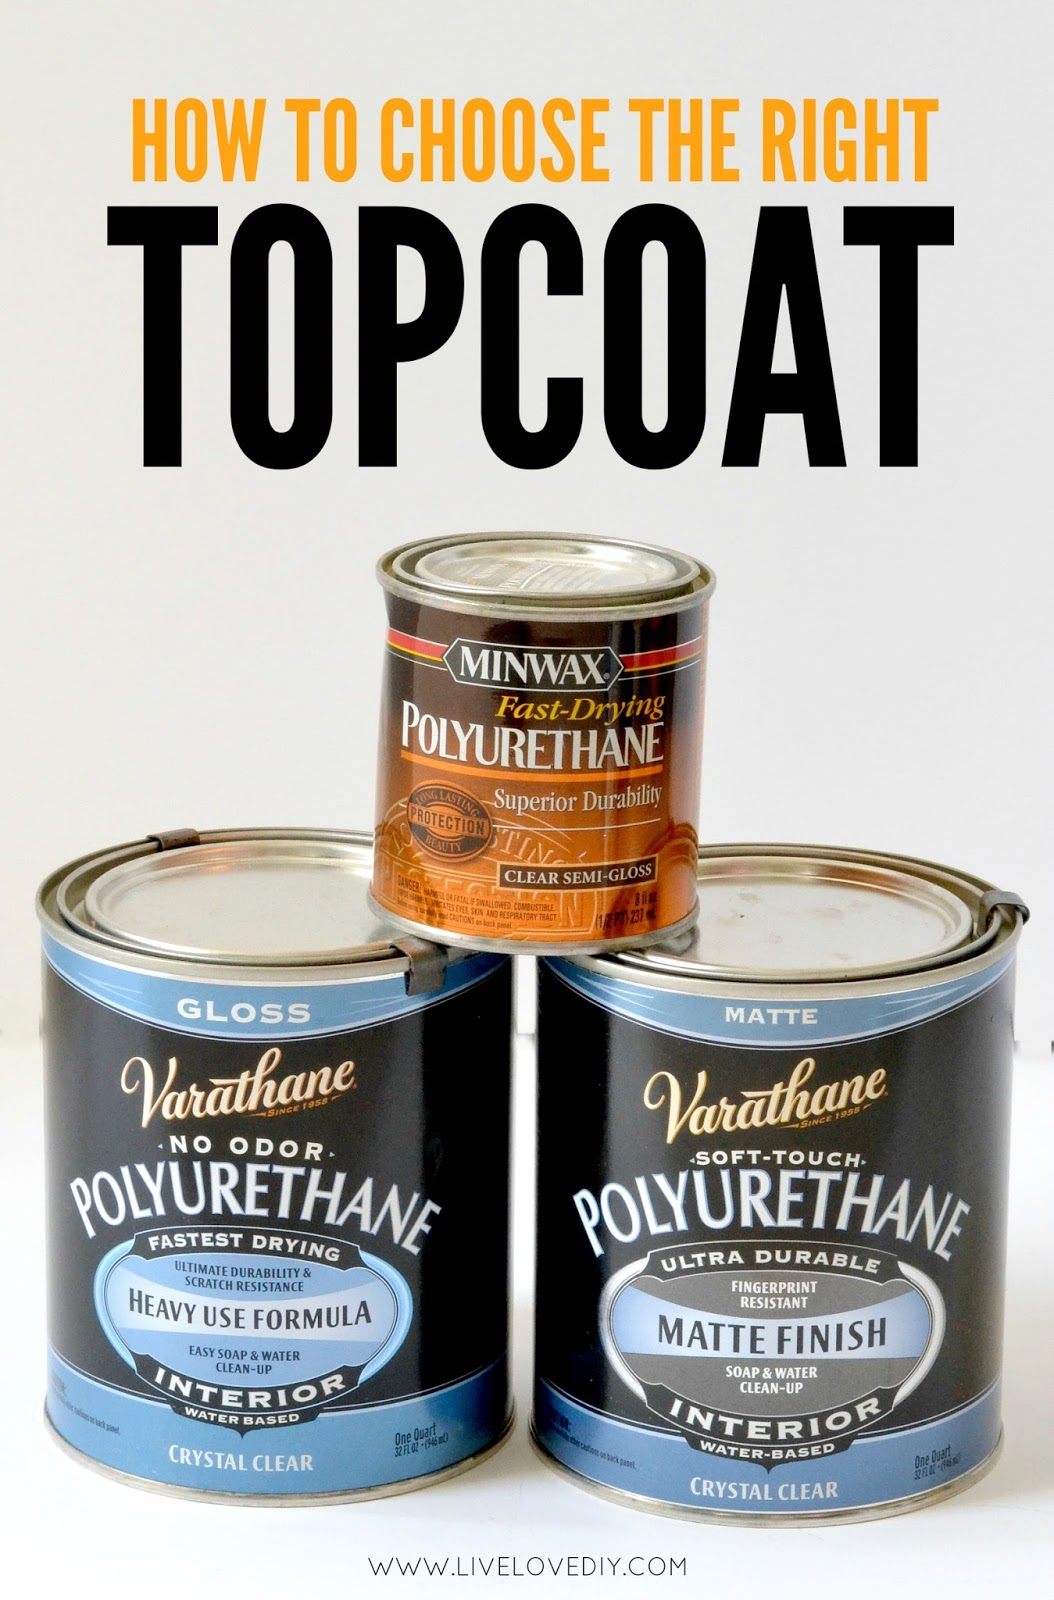 best paint for wood furnitureLiveLoveDIY Your Top 5 Furniture Paint FAQS Answered